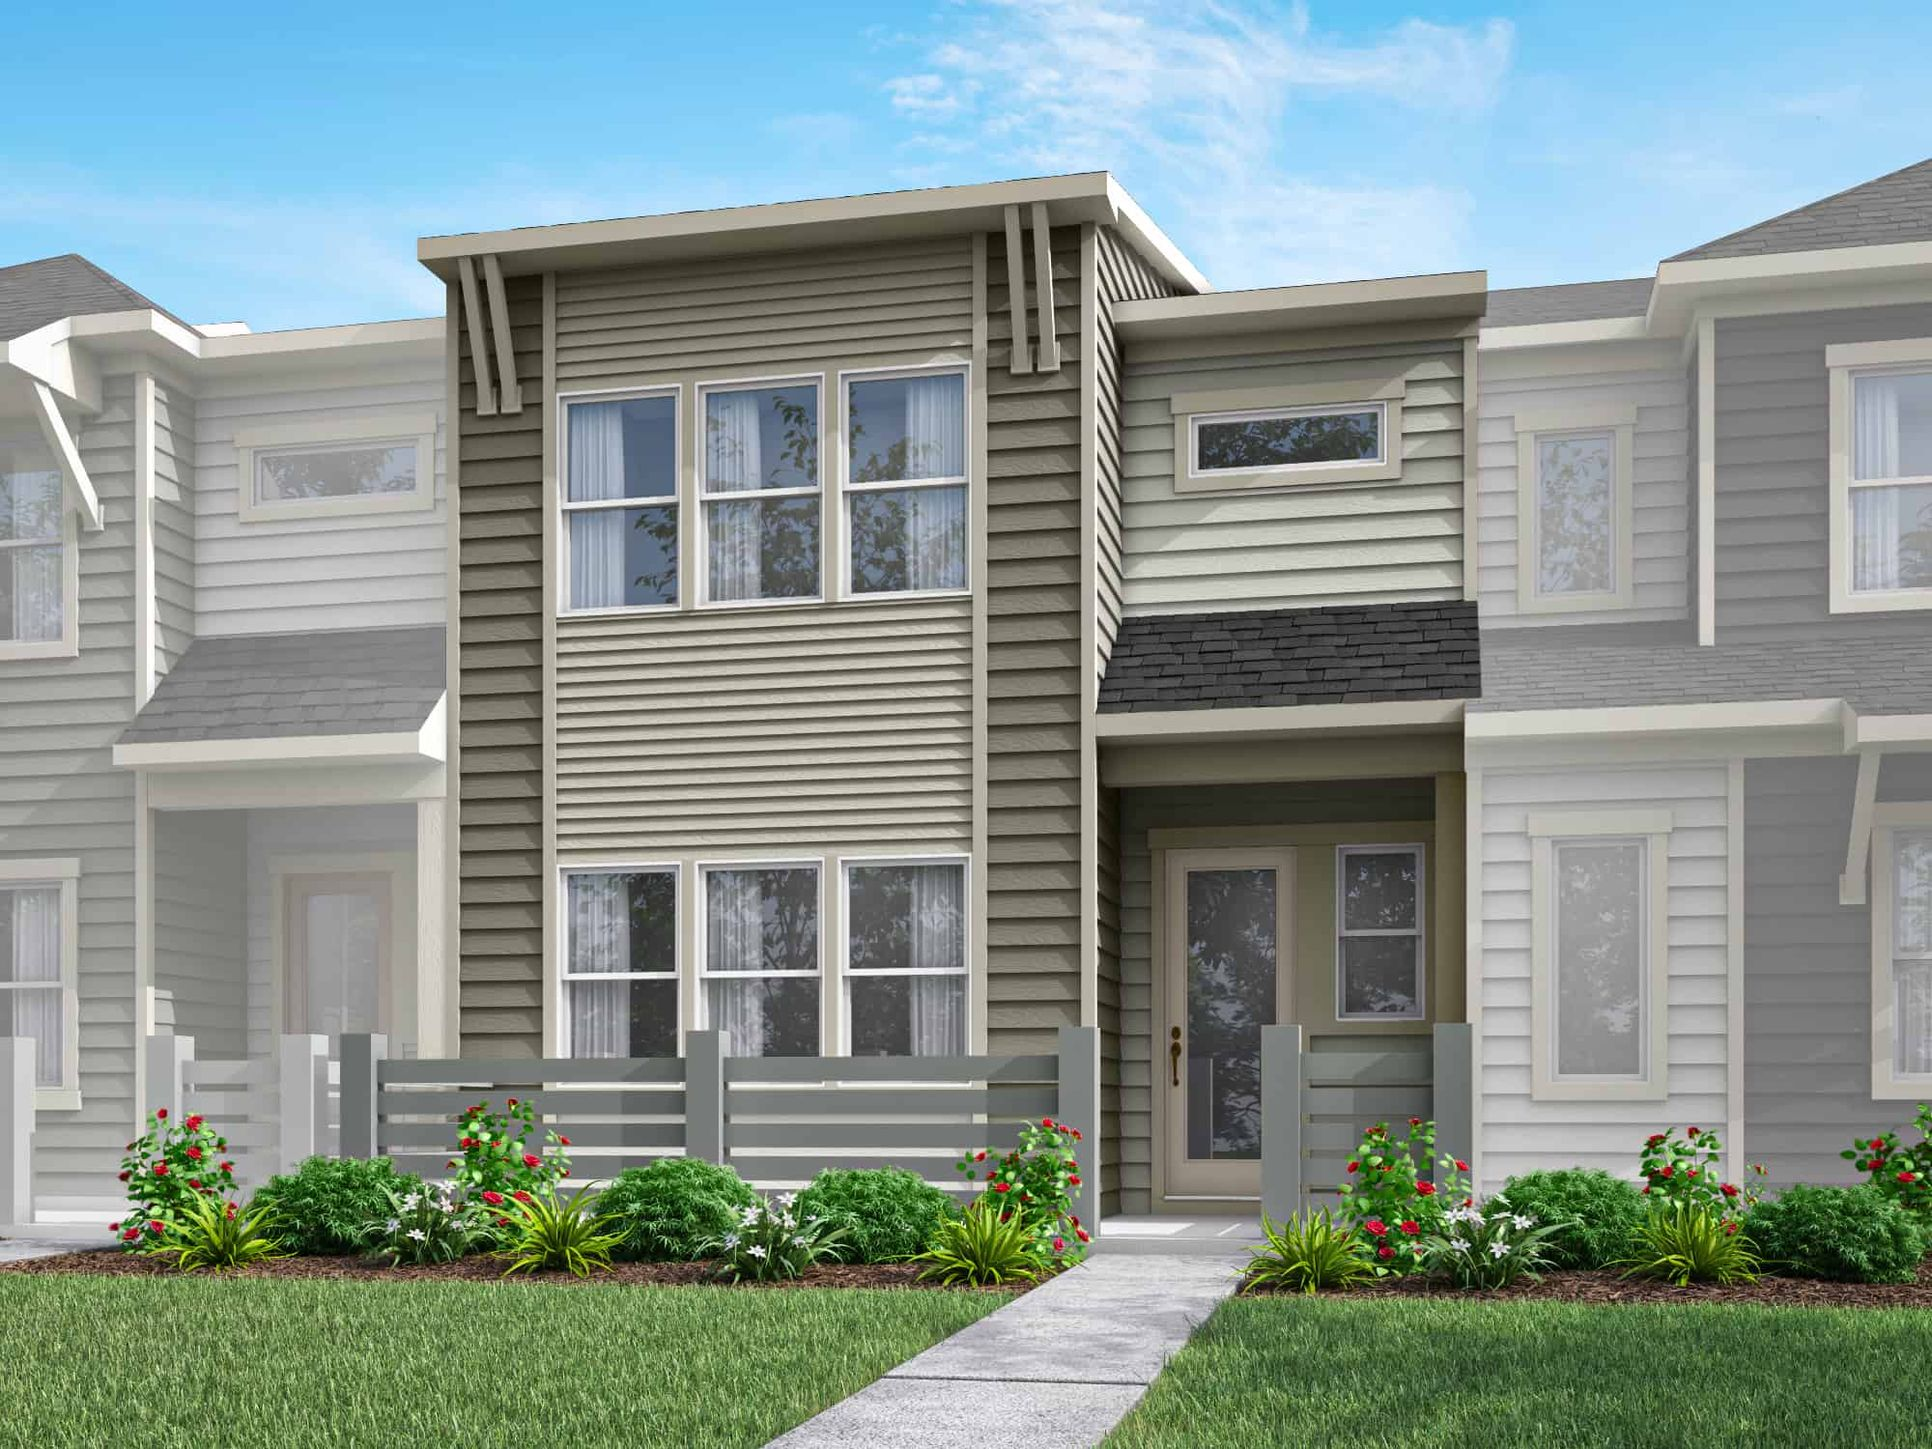 Pennant Square | Plan 1 - Exterior Style A